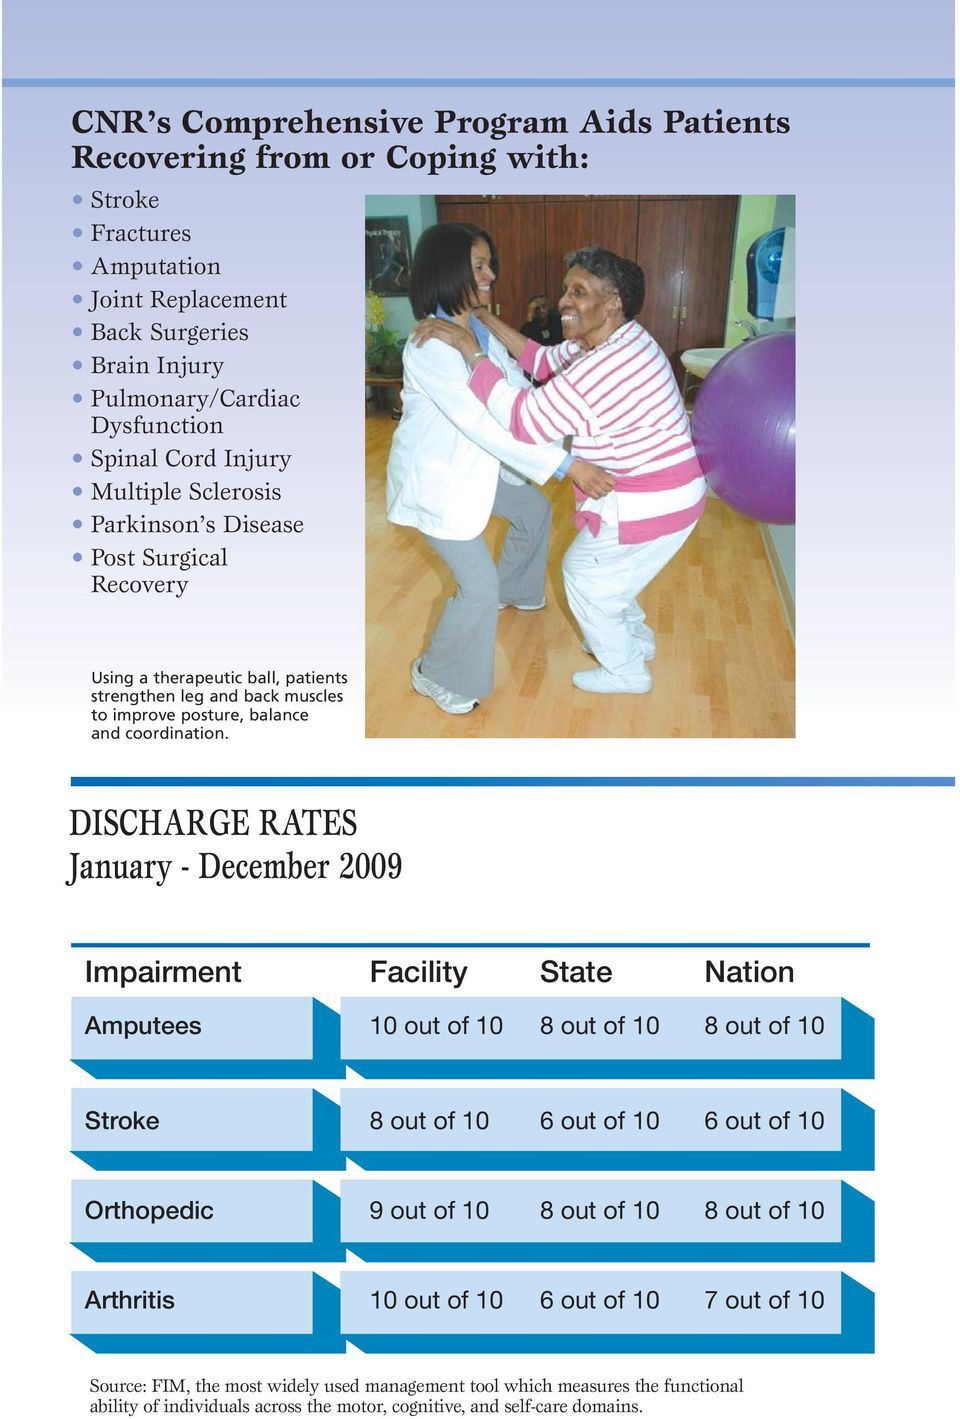 DISCHARGE RATES January - December 2009 Impairment Facility State Nation Amputees 10 out of 10 8 out of 10 8 out of 10 Stroke 8 out of 10 6 out of 10 6 out of 10 Orthopedic 9 out of 10 8 out of